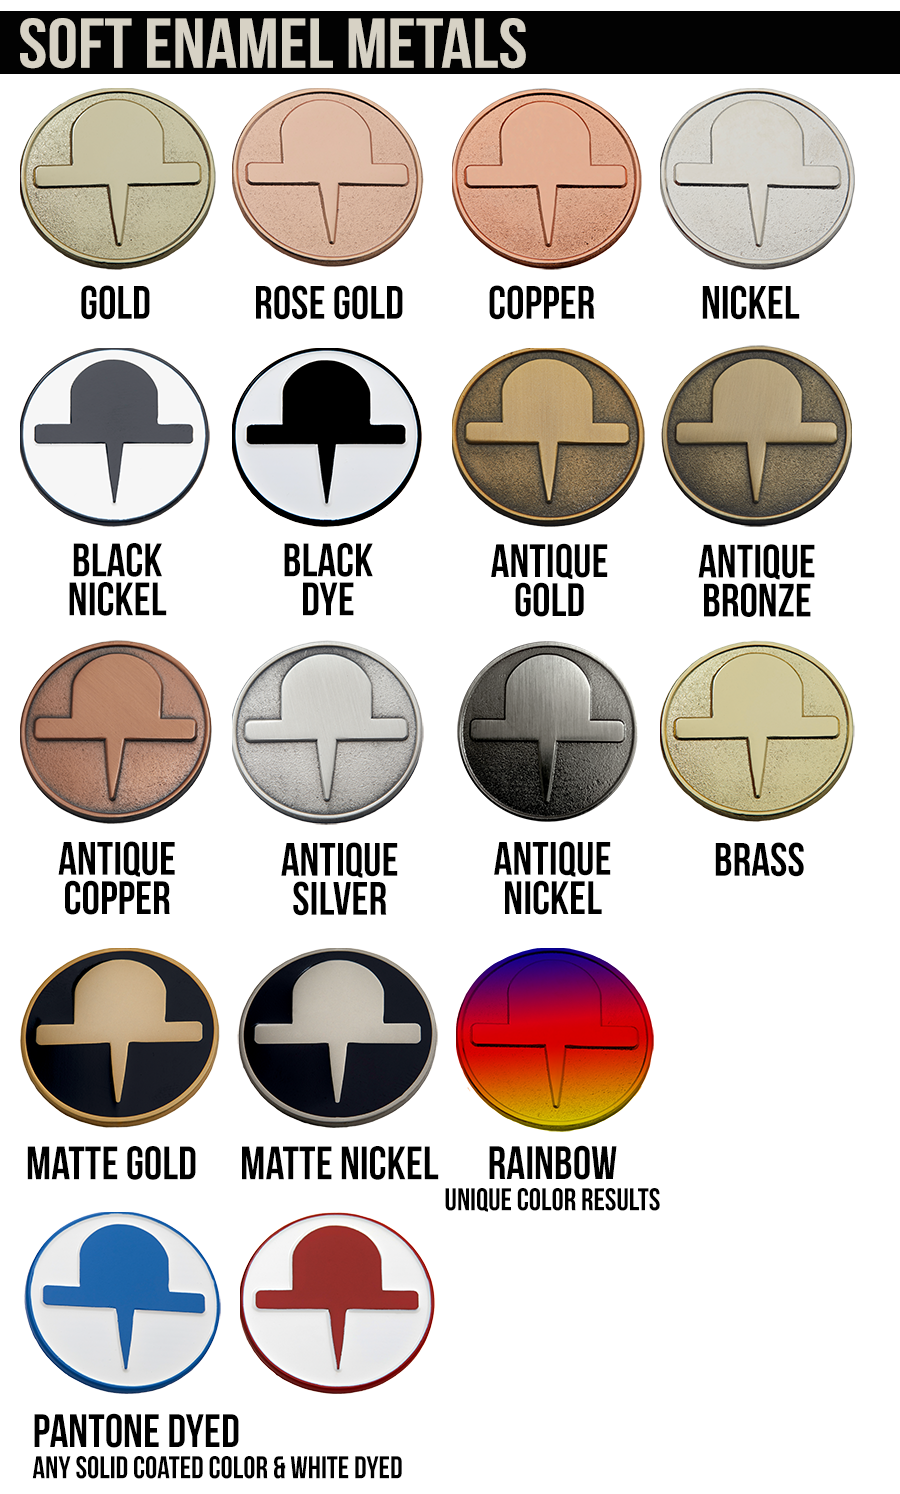 softenamel.metals.revised.png